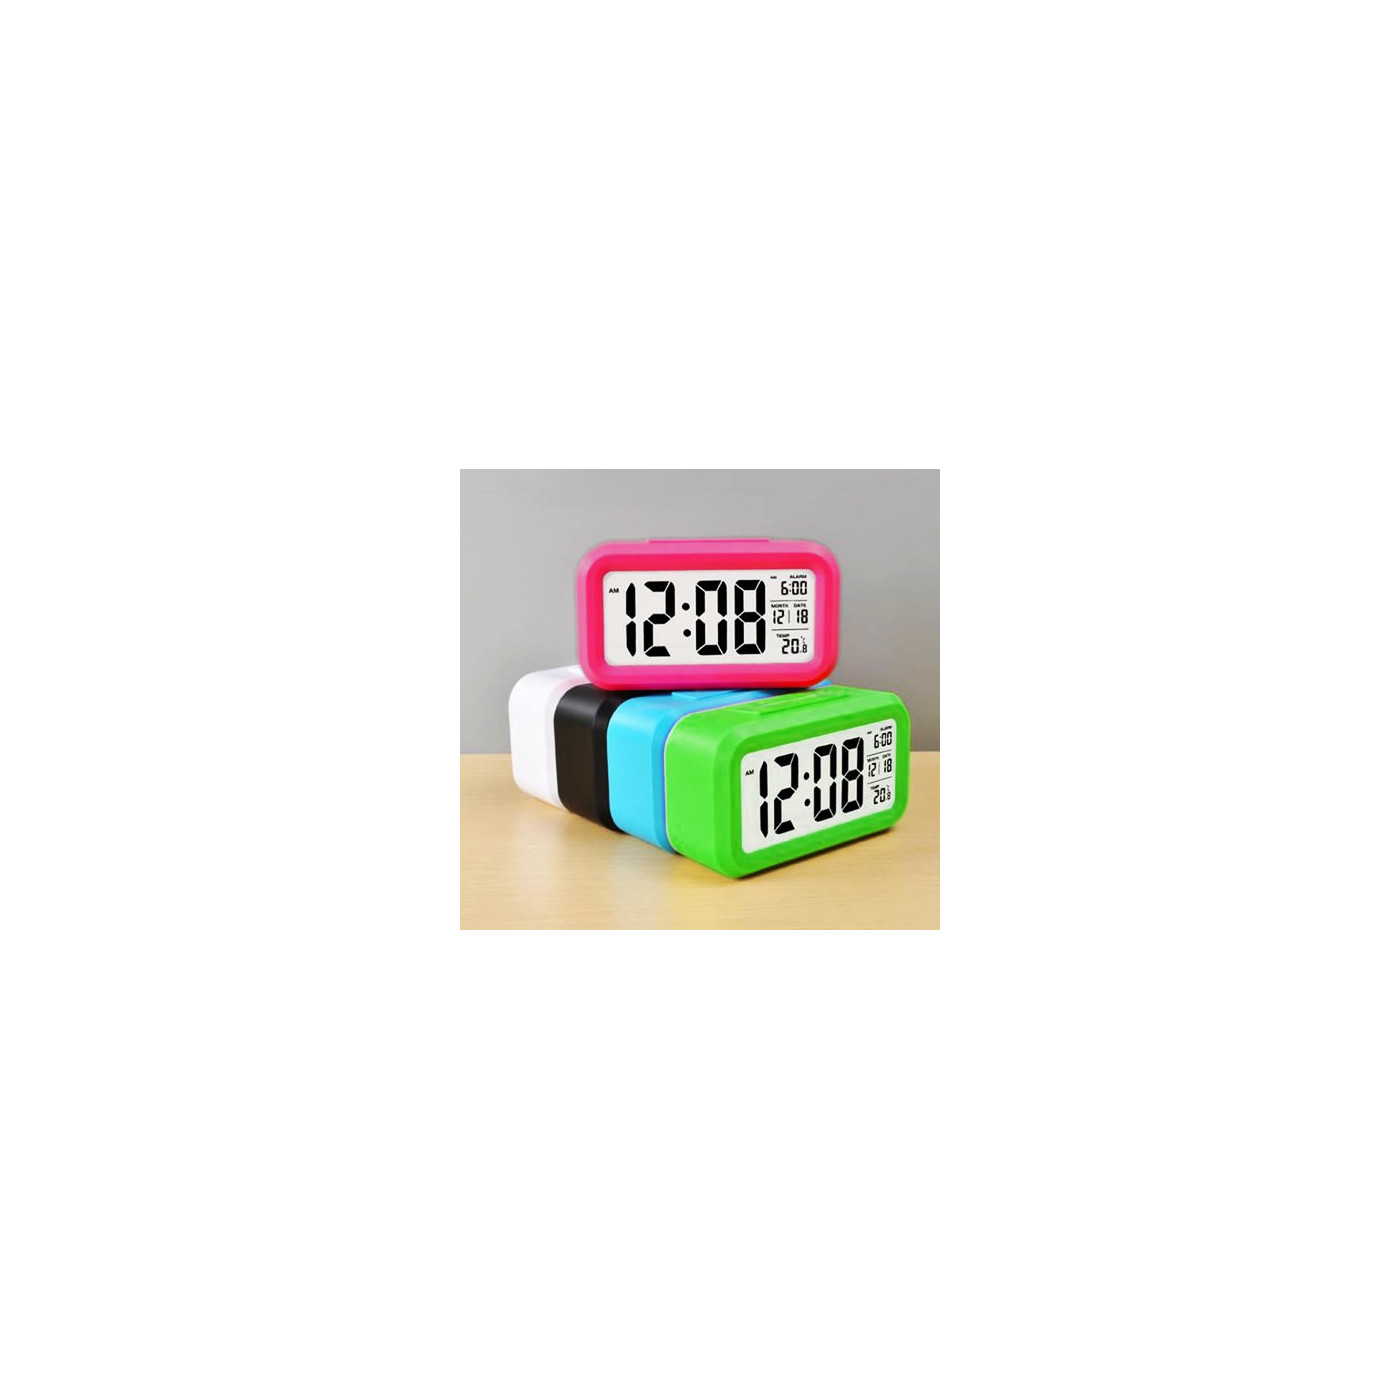 Clock with alarm in cheerful color: green